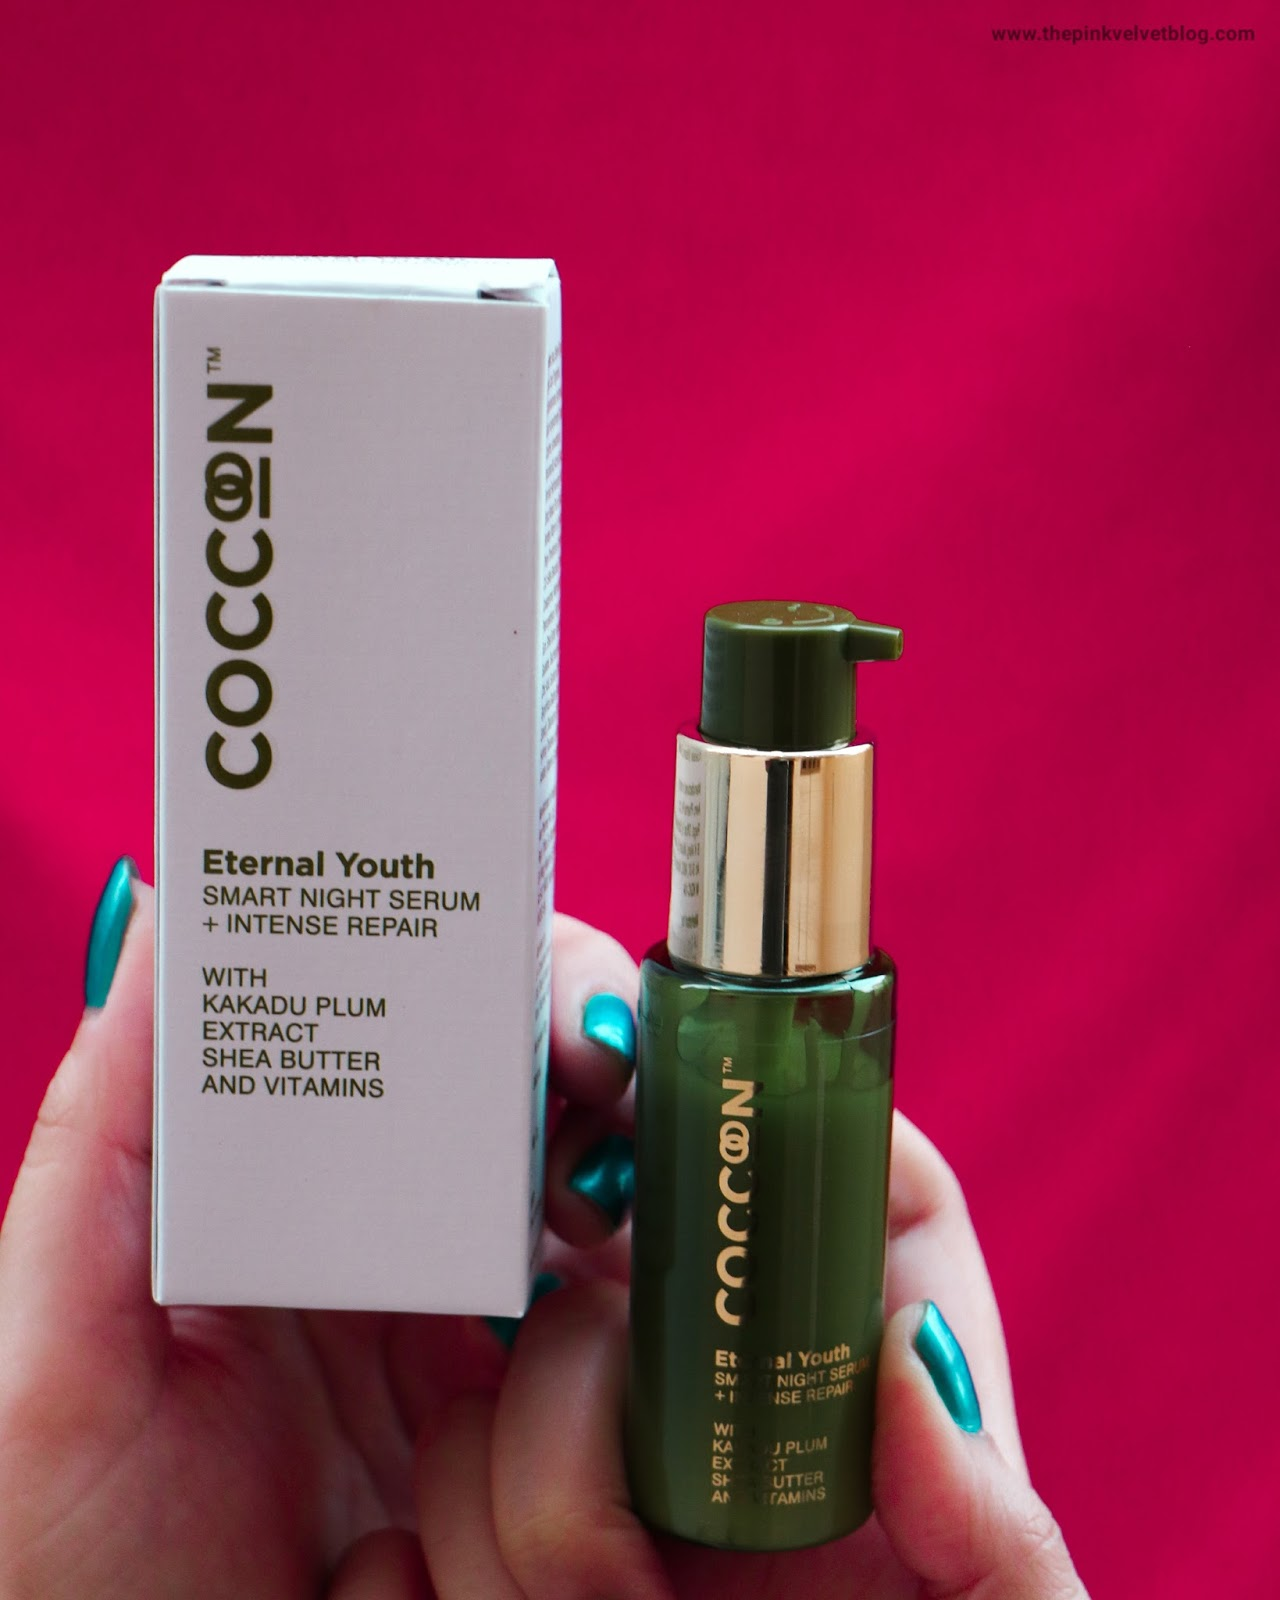 Coccoon Night Serum - My Envy Box - July